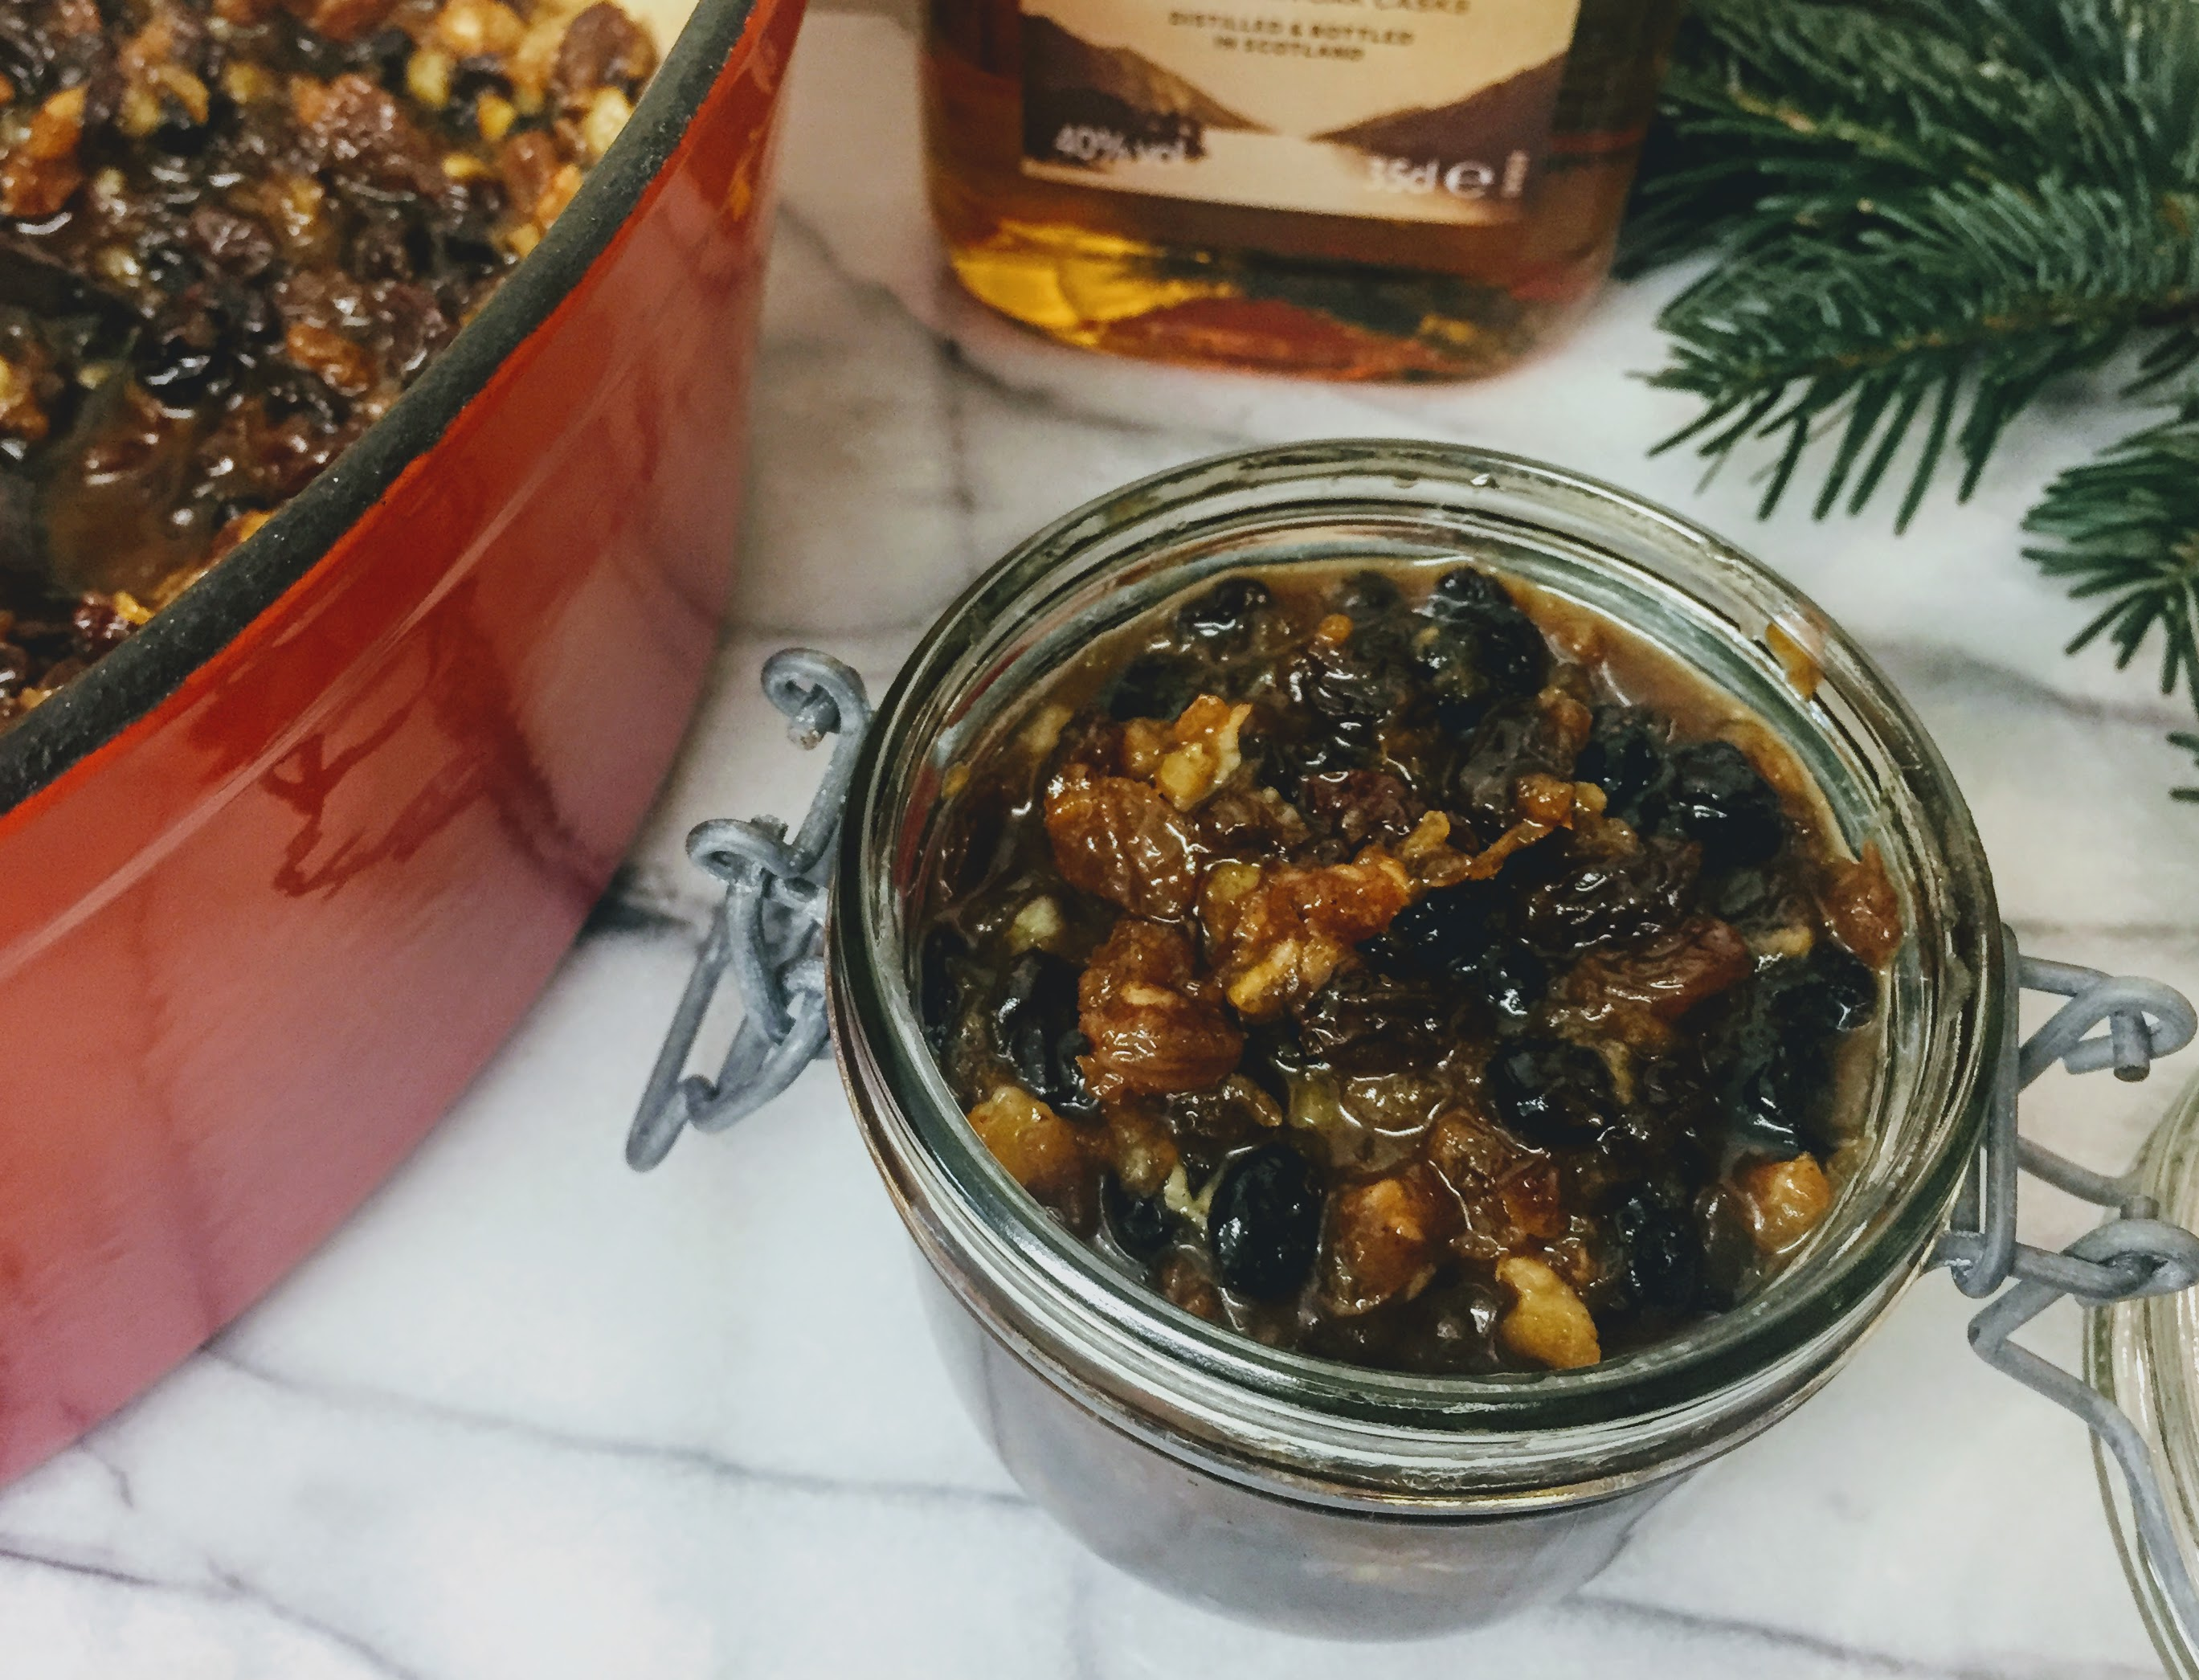 A small glass jar packed with mincemeat; the dried fruit is slightly plump from the liquid and is dark and glistening. The pan with the remaining mincemeat, a half bottle of whiskey and a pine sprig surround the jar.